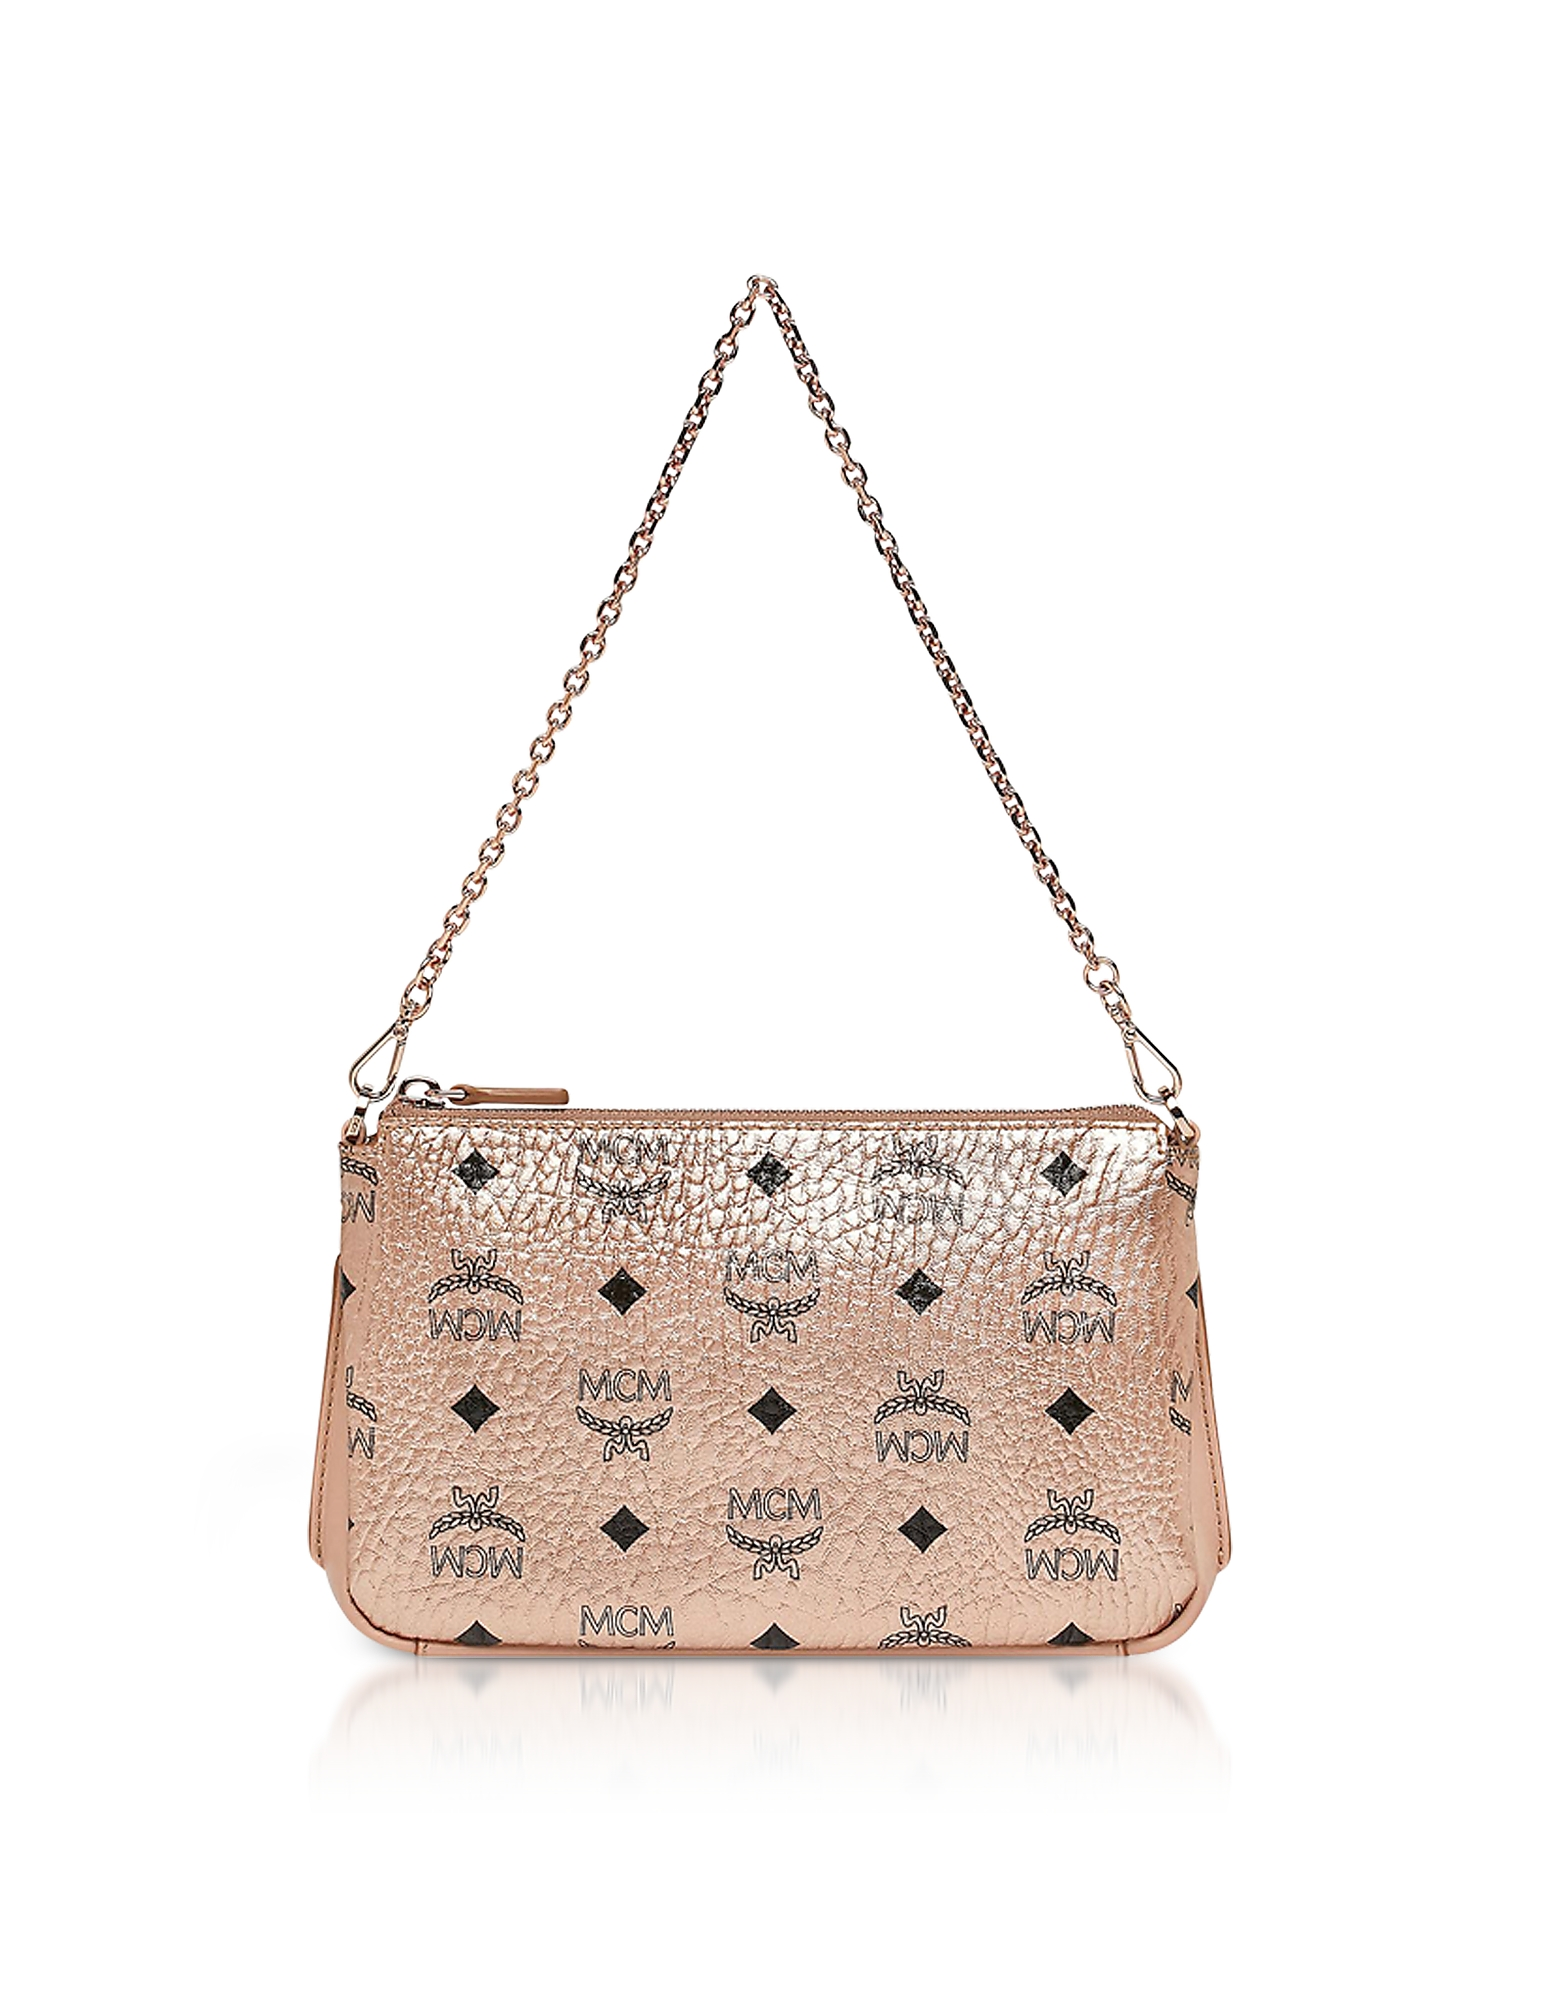 MCM Handbags, Champagne Gold Visetos Medium Millie Top Zip Crossbody